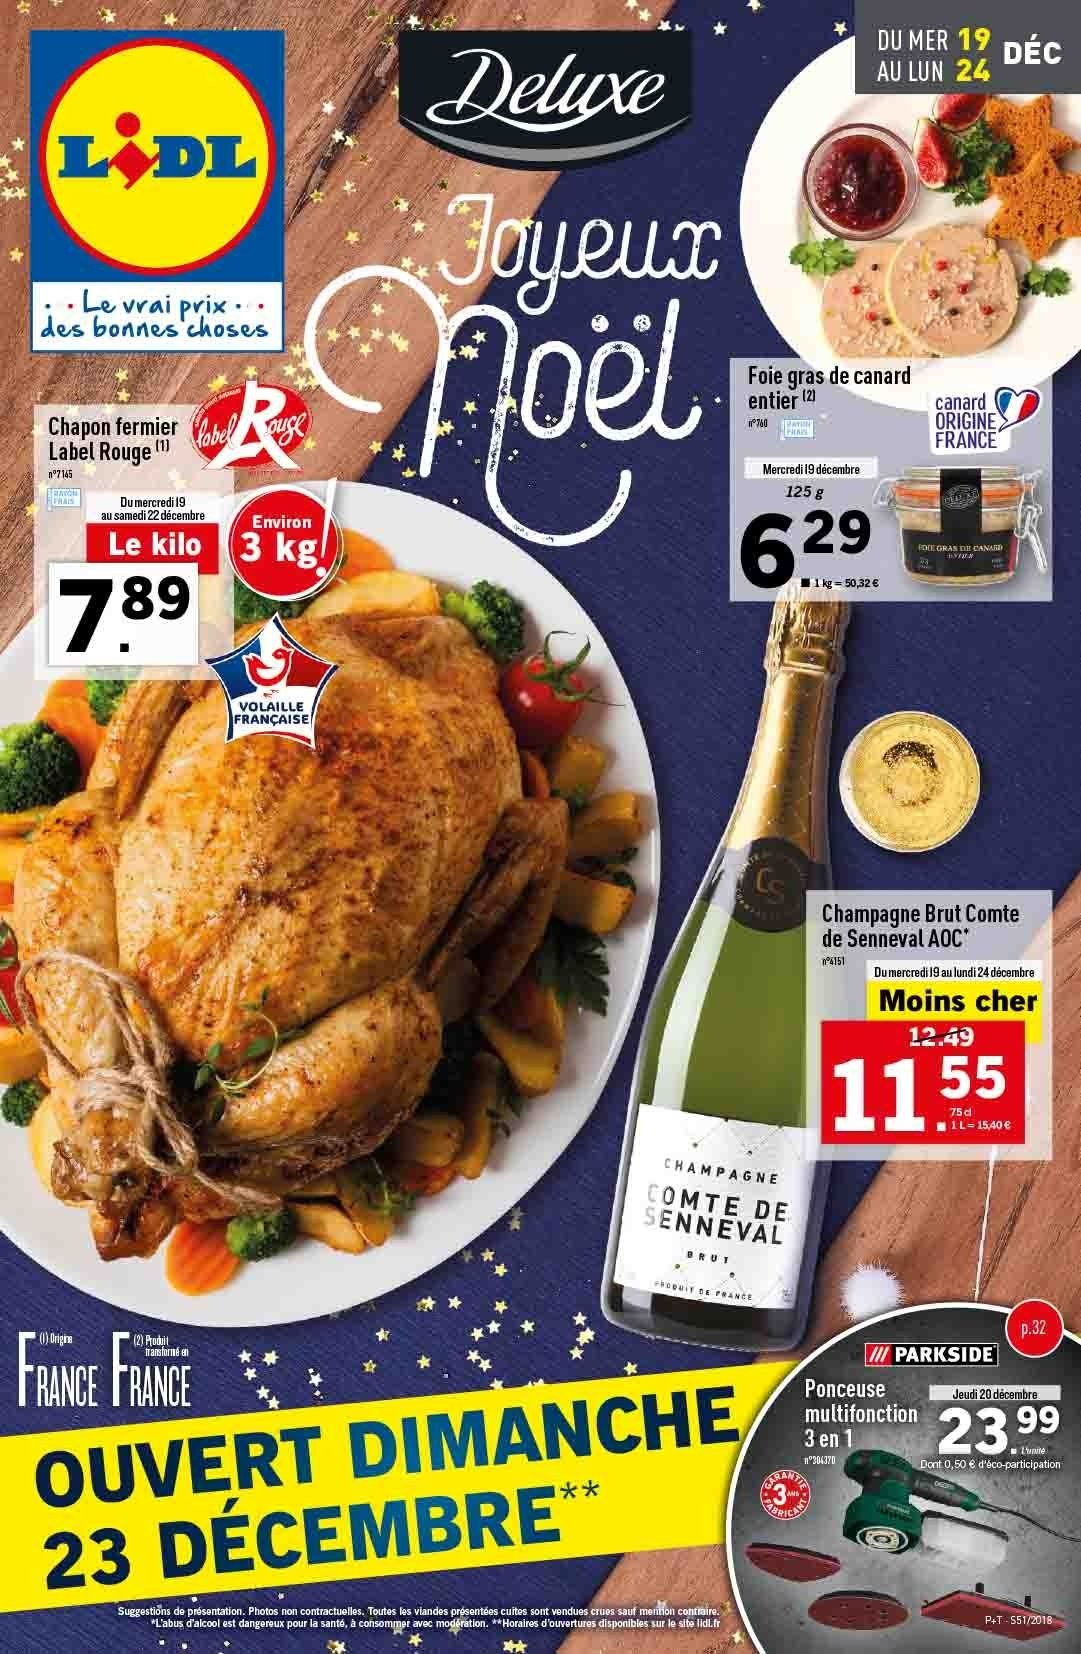 Catalogue Lidl - 19.12.2018 - 24.12.2018. Page 1.